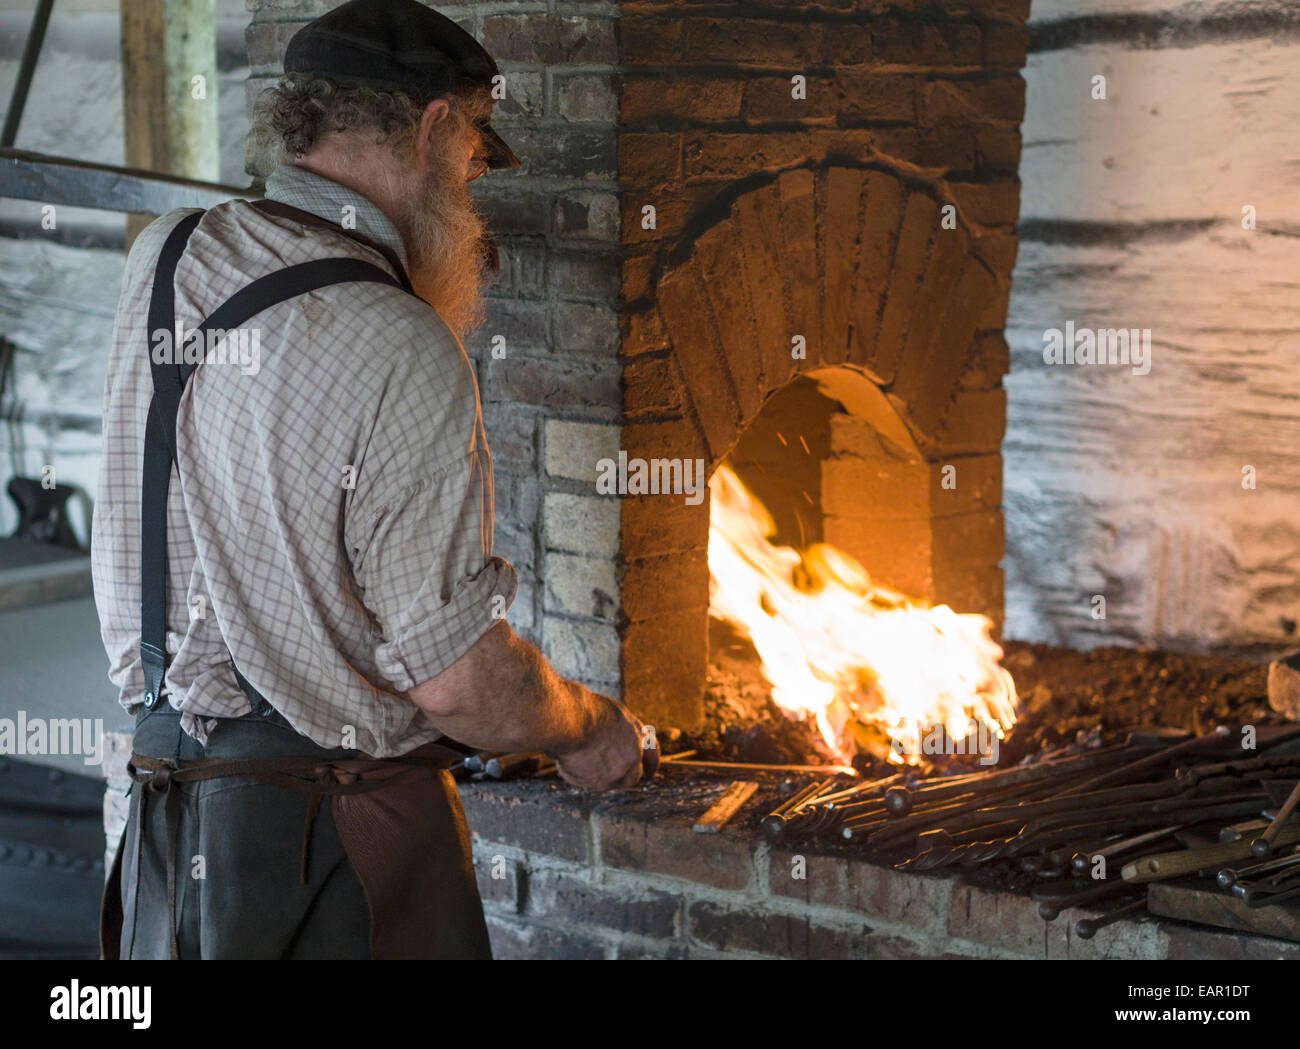 Blacksmith at his forge. A blacksmith heats the iron with his right hand while pumping the bellows with his left. - Stock Image